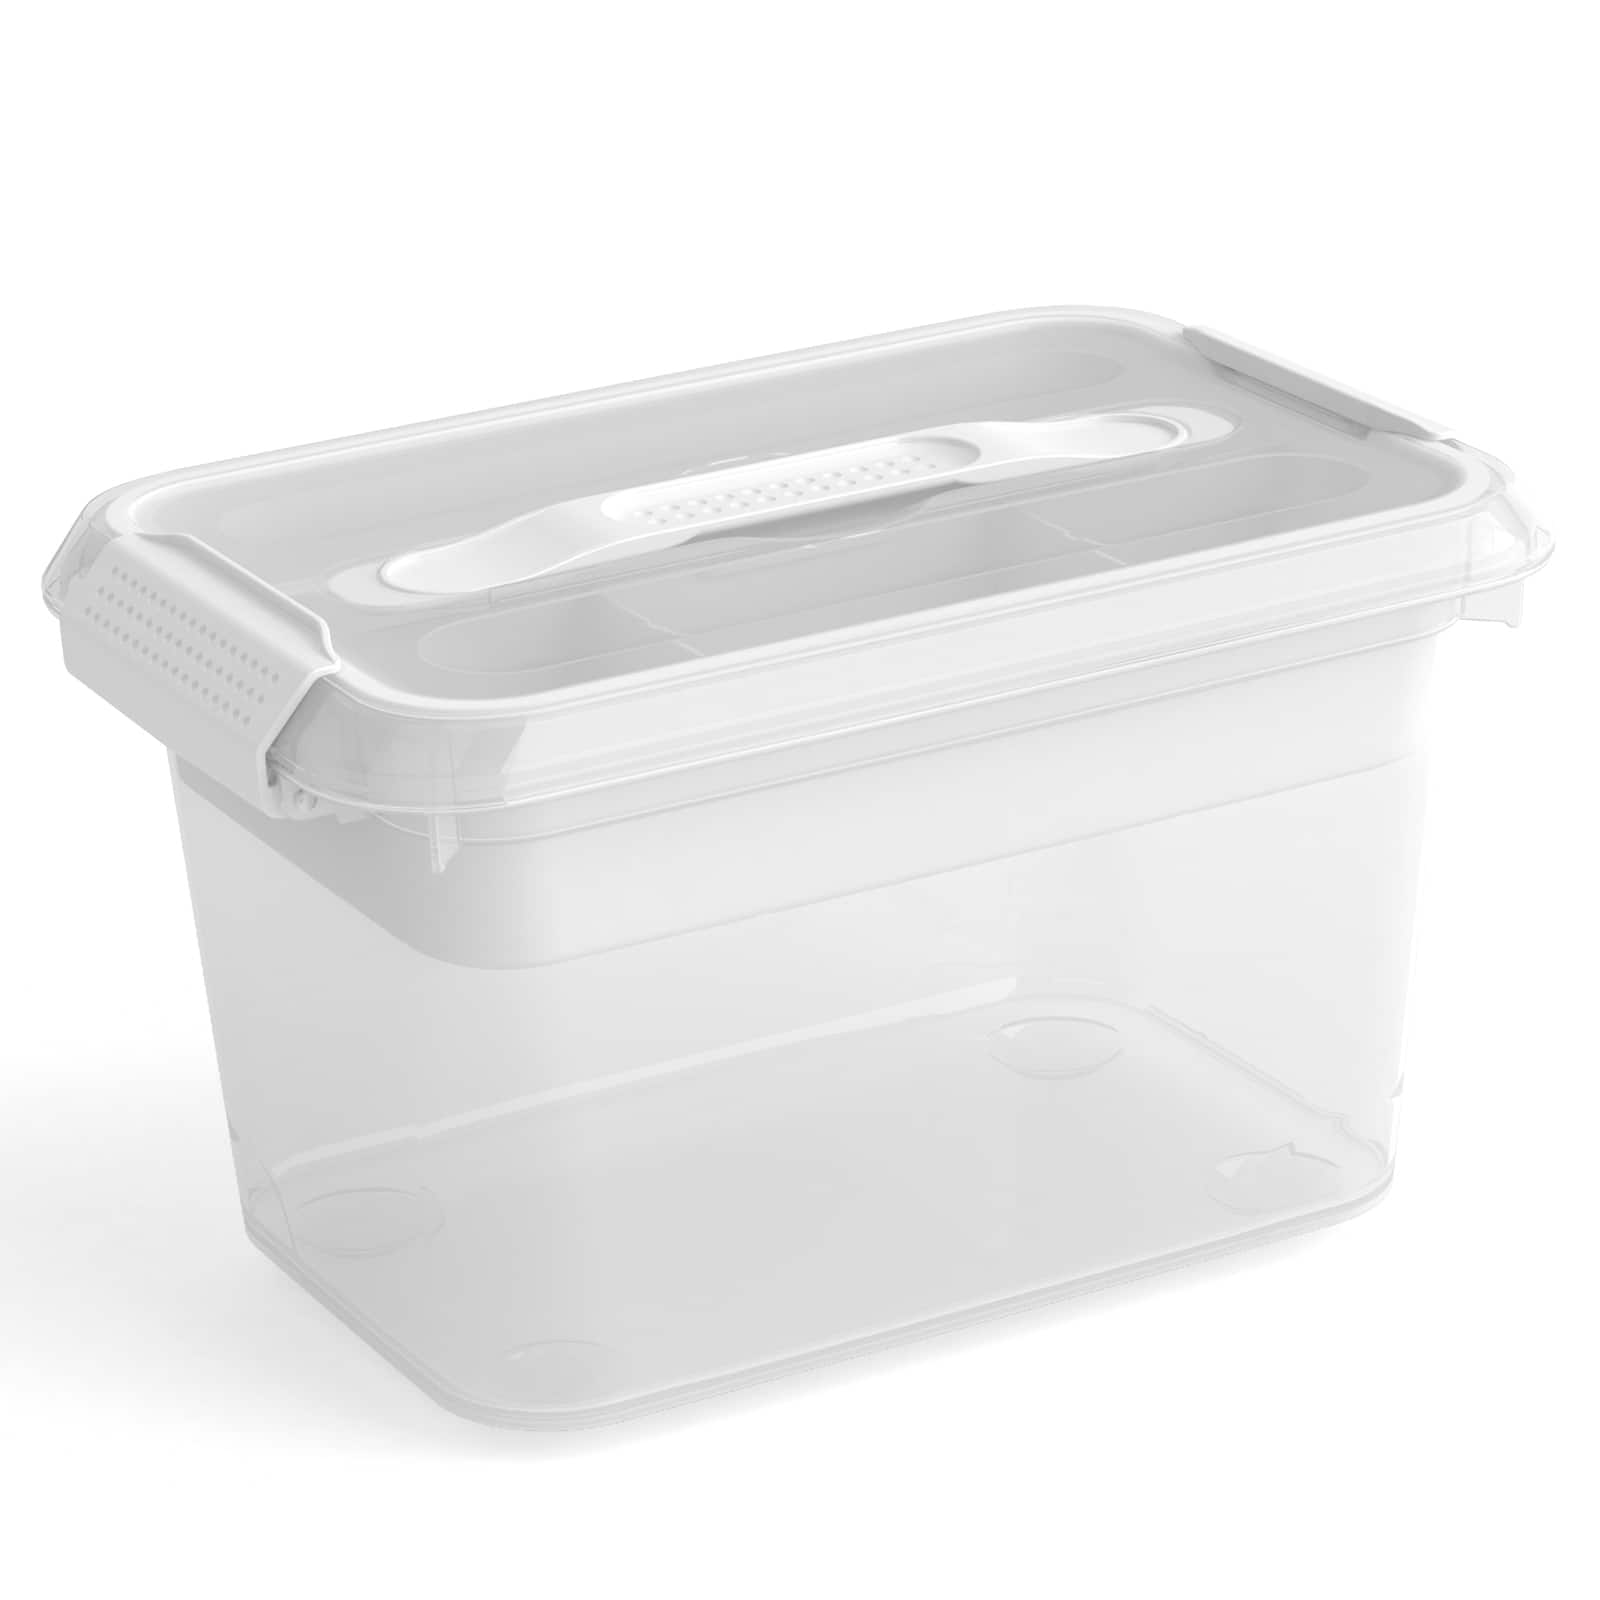 Latchmate White Storage Box With Tray By Recollections™, 6.2 Qt.